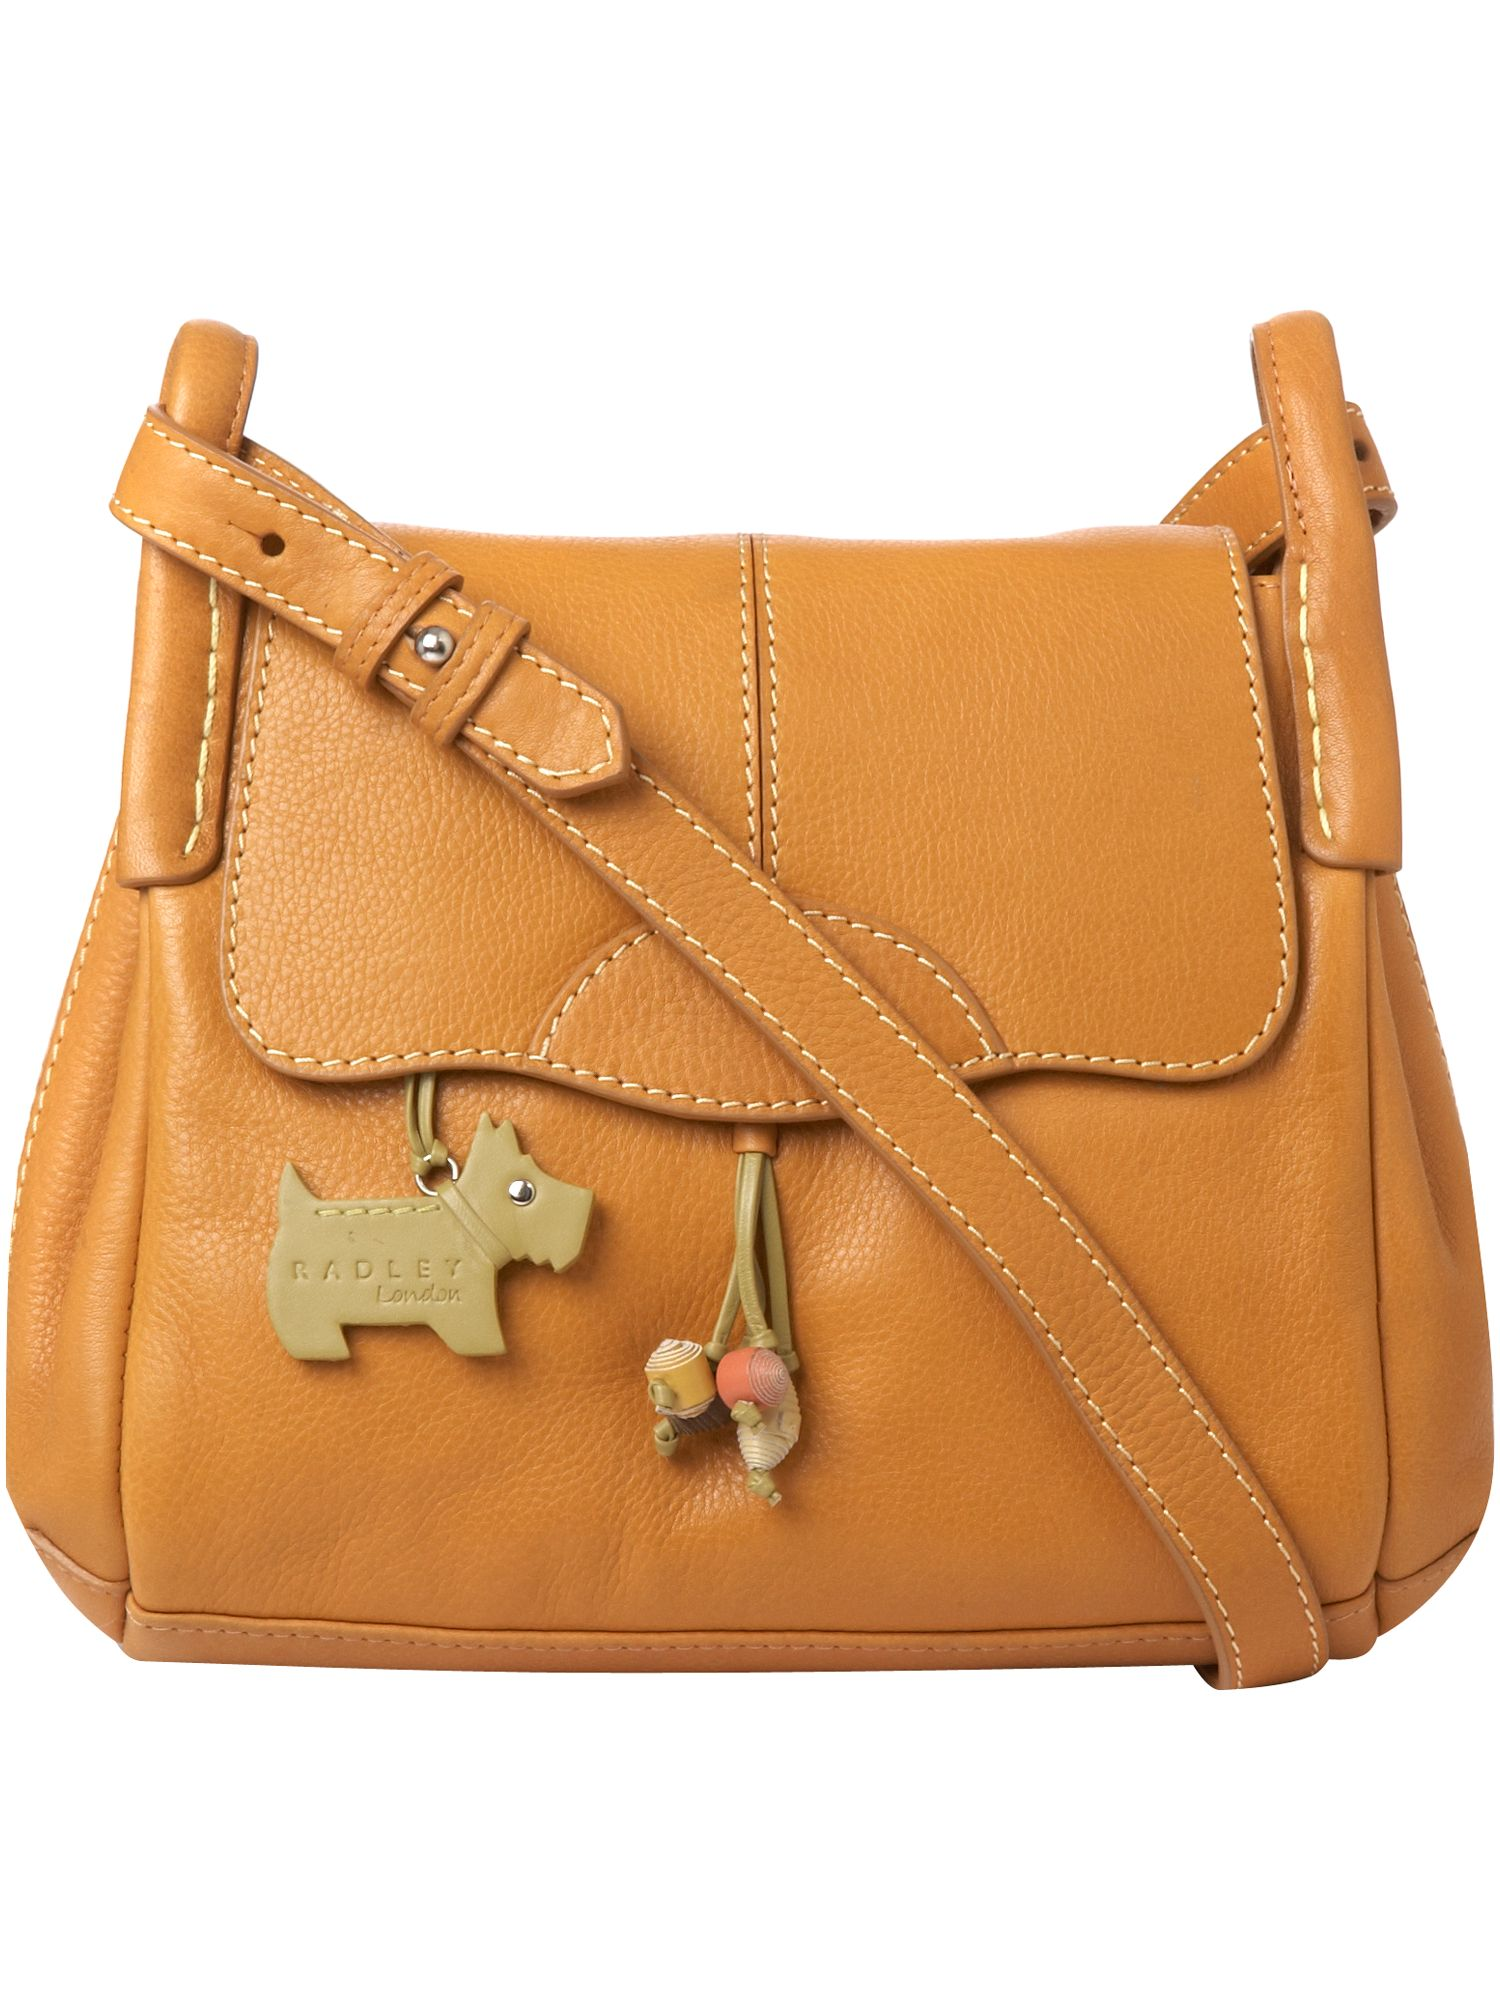 Radley Cheadle Small Flapover Across the Body Bag product image